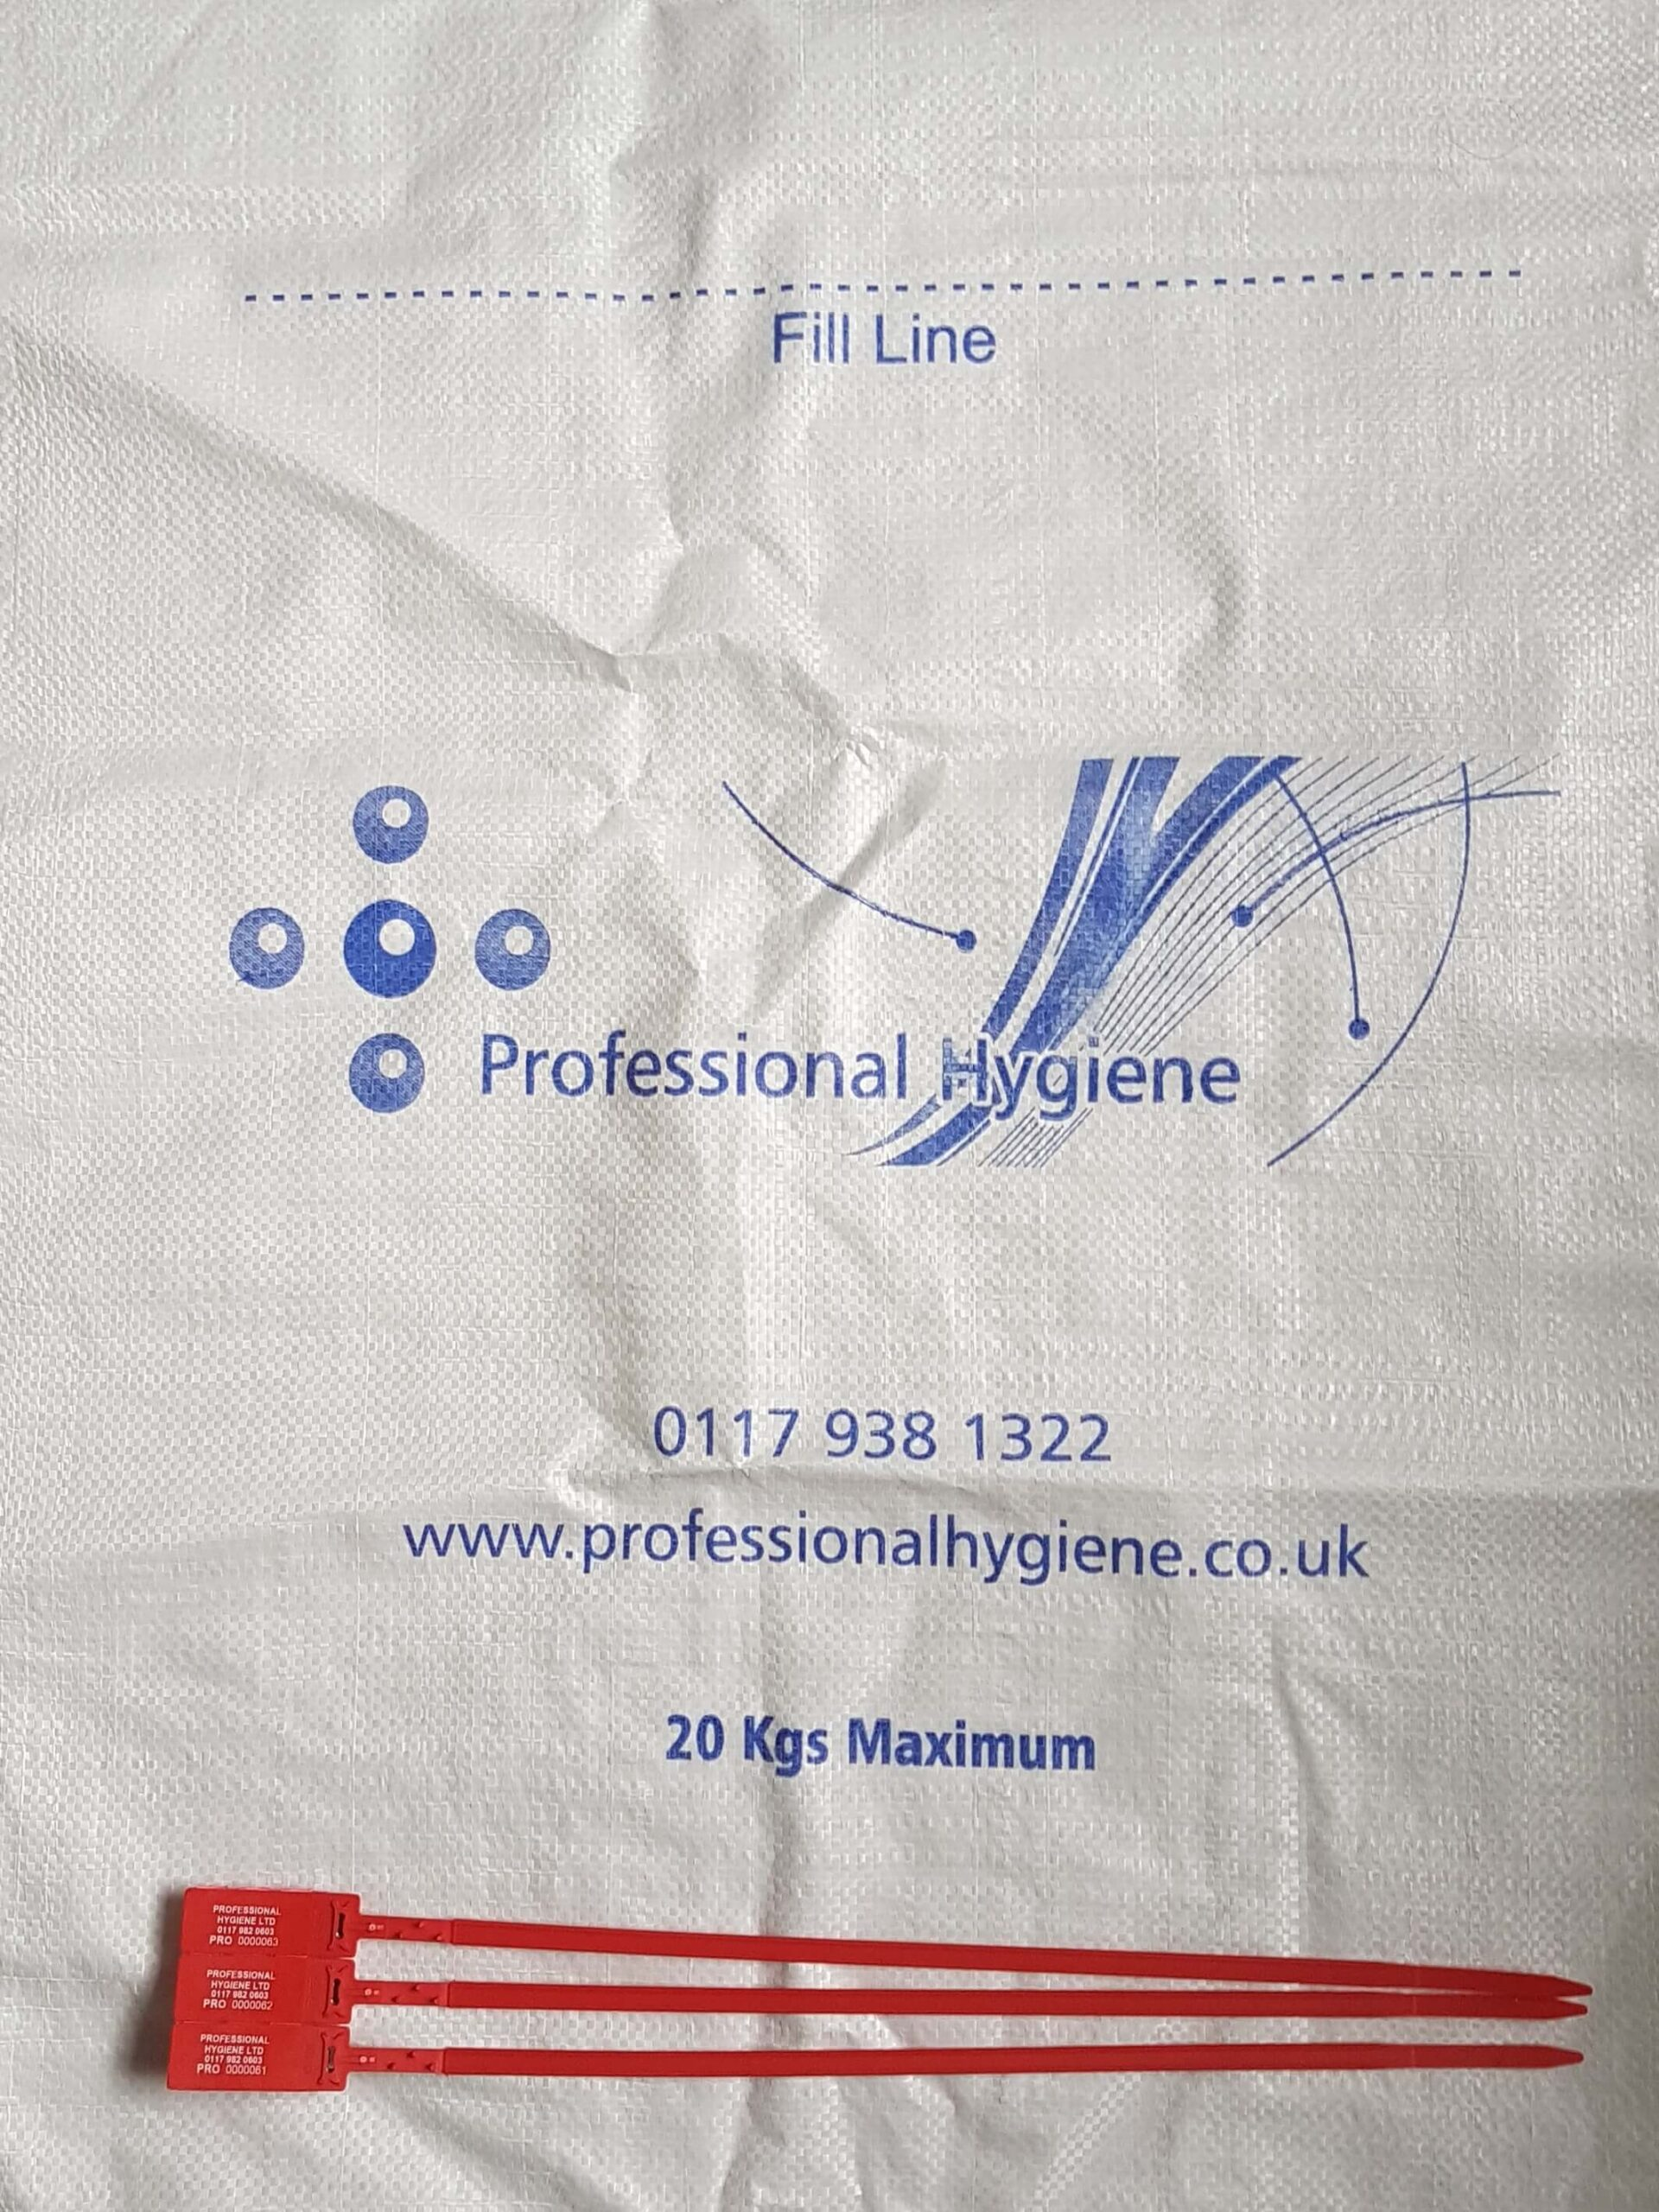 Image of the bag service provided for confidential waste management